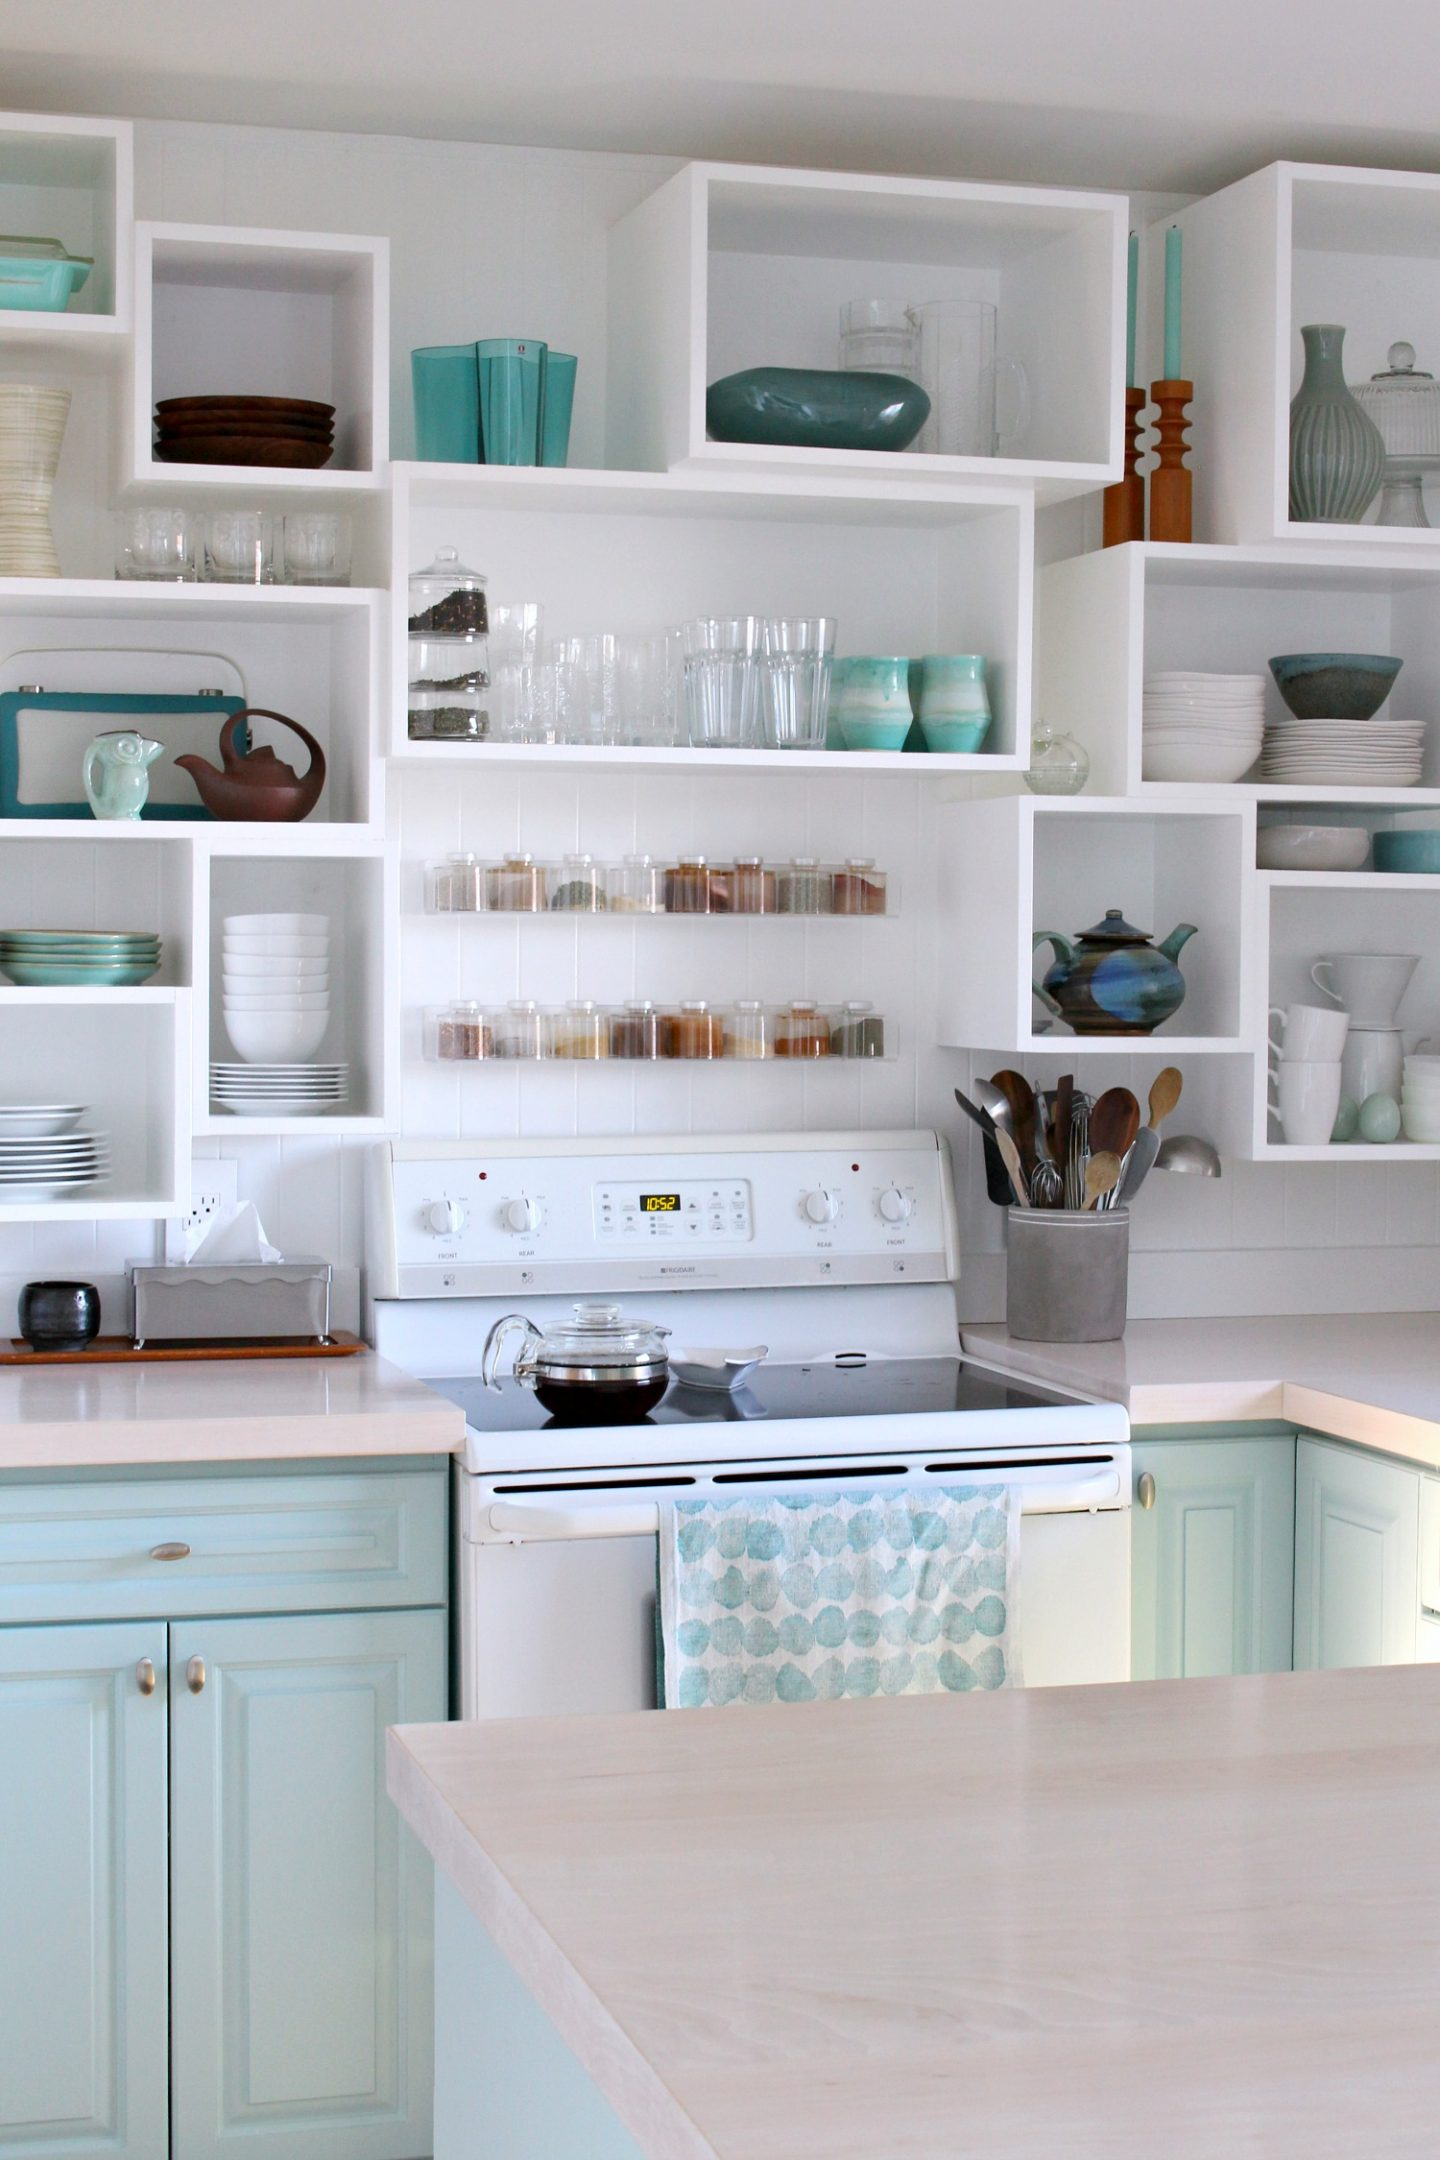 How to Paint Cabinets: Sherwin Williams Emerald Trim Enamel Review